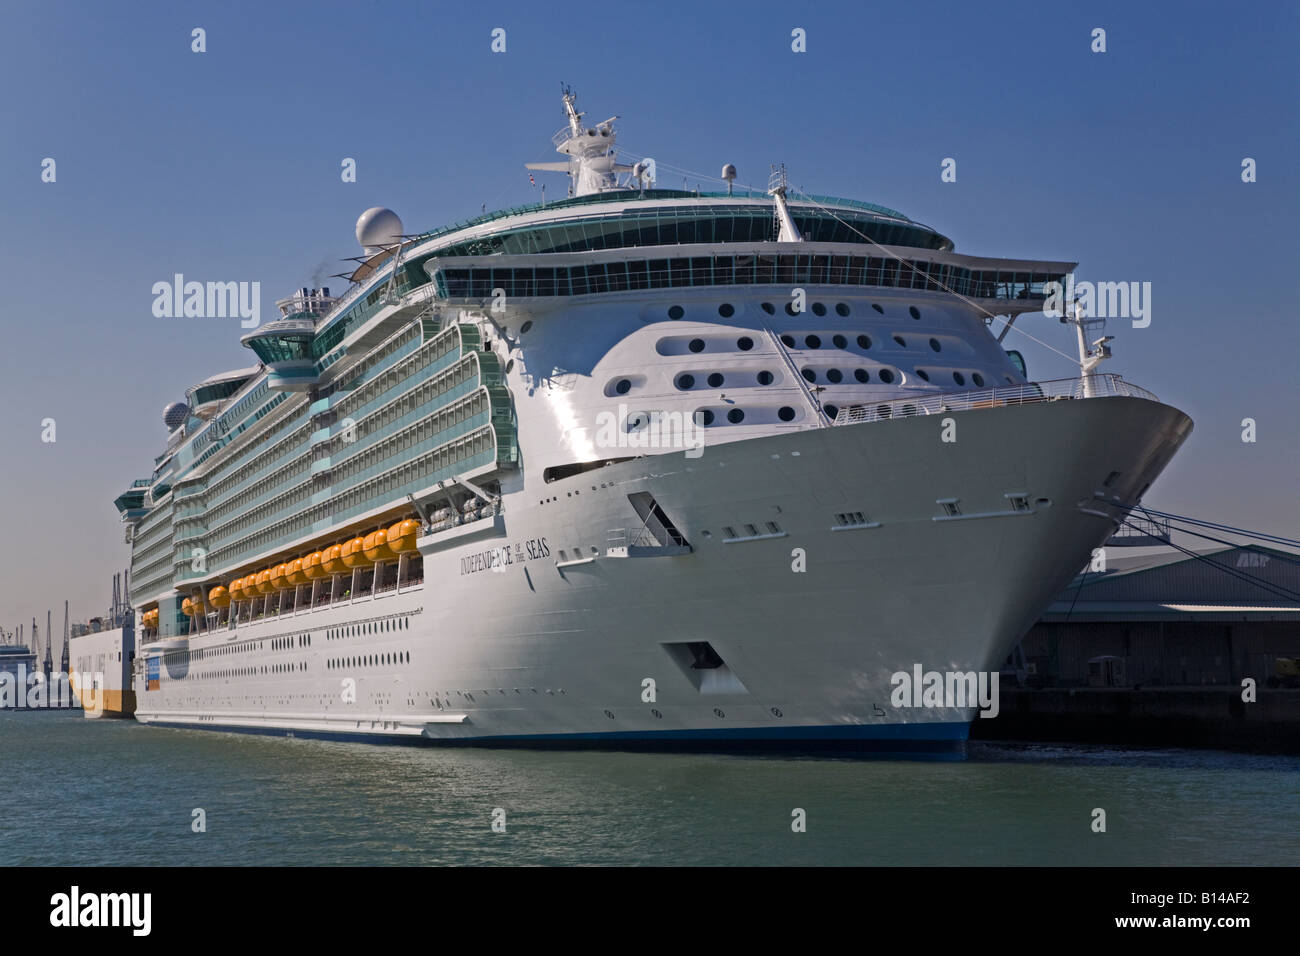 Royal Carribean Independence of the Seas in Southampton Docks, Hampshire, England - Stock Image